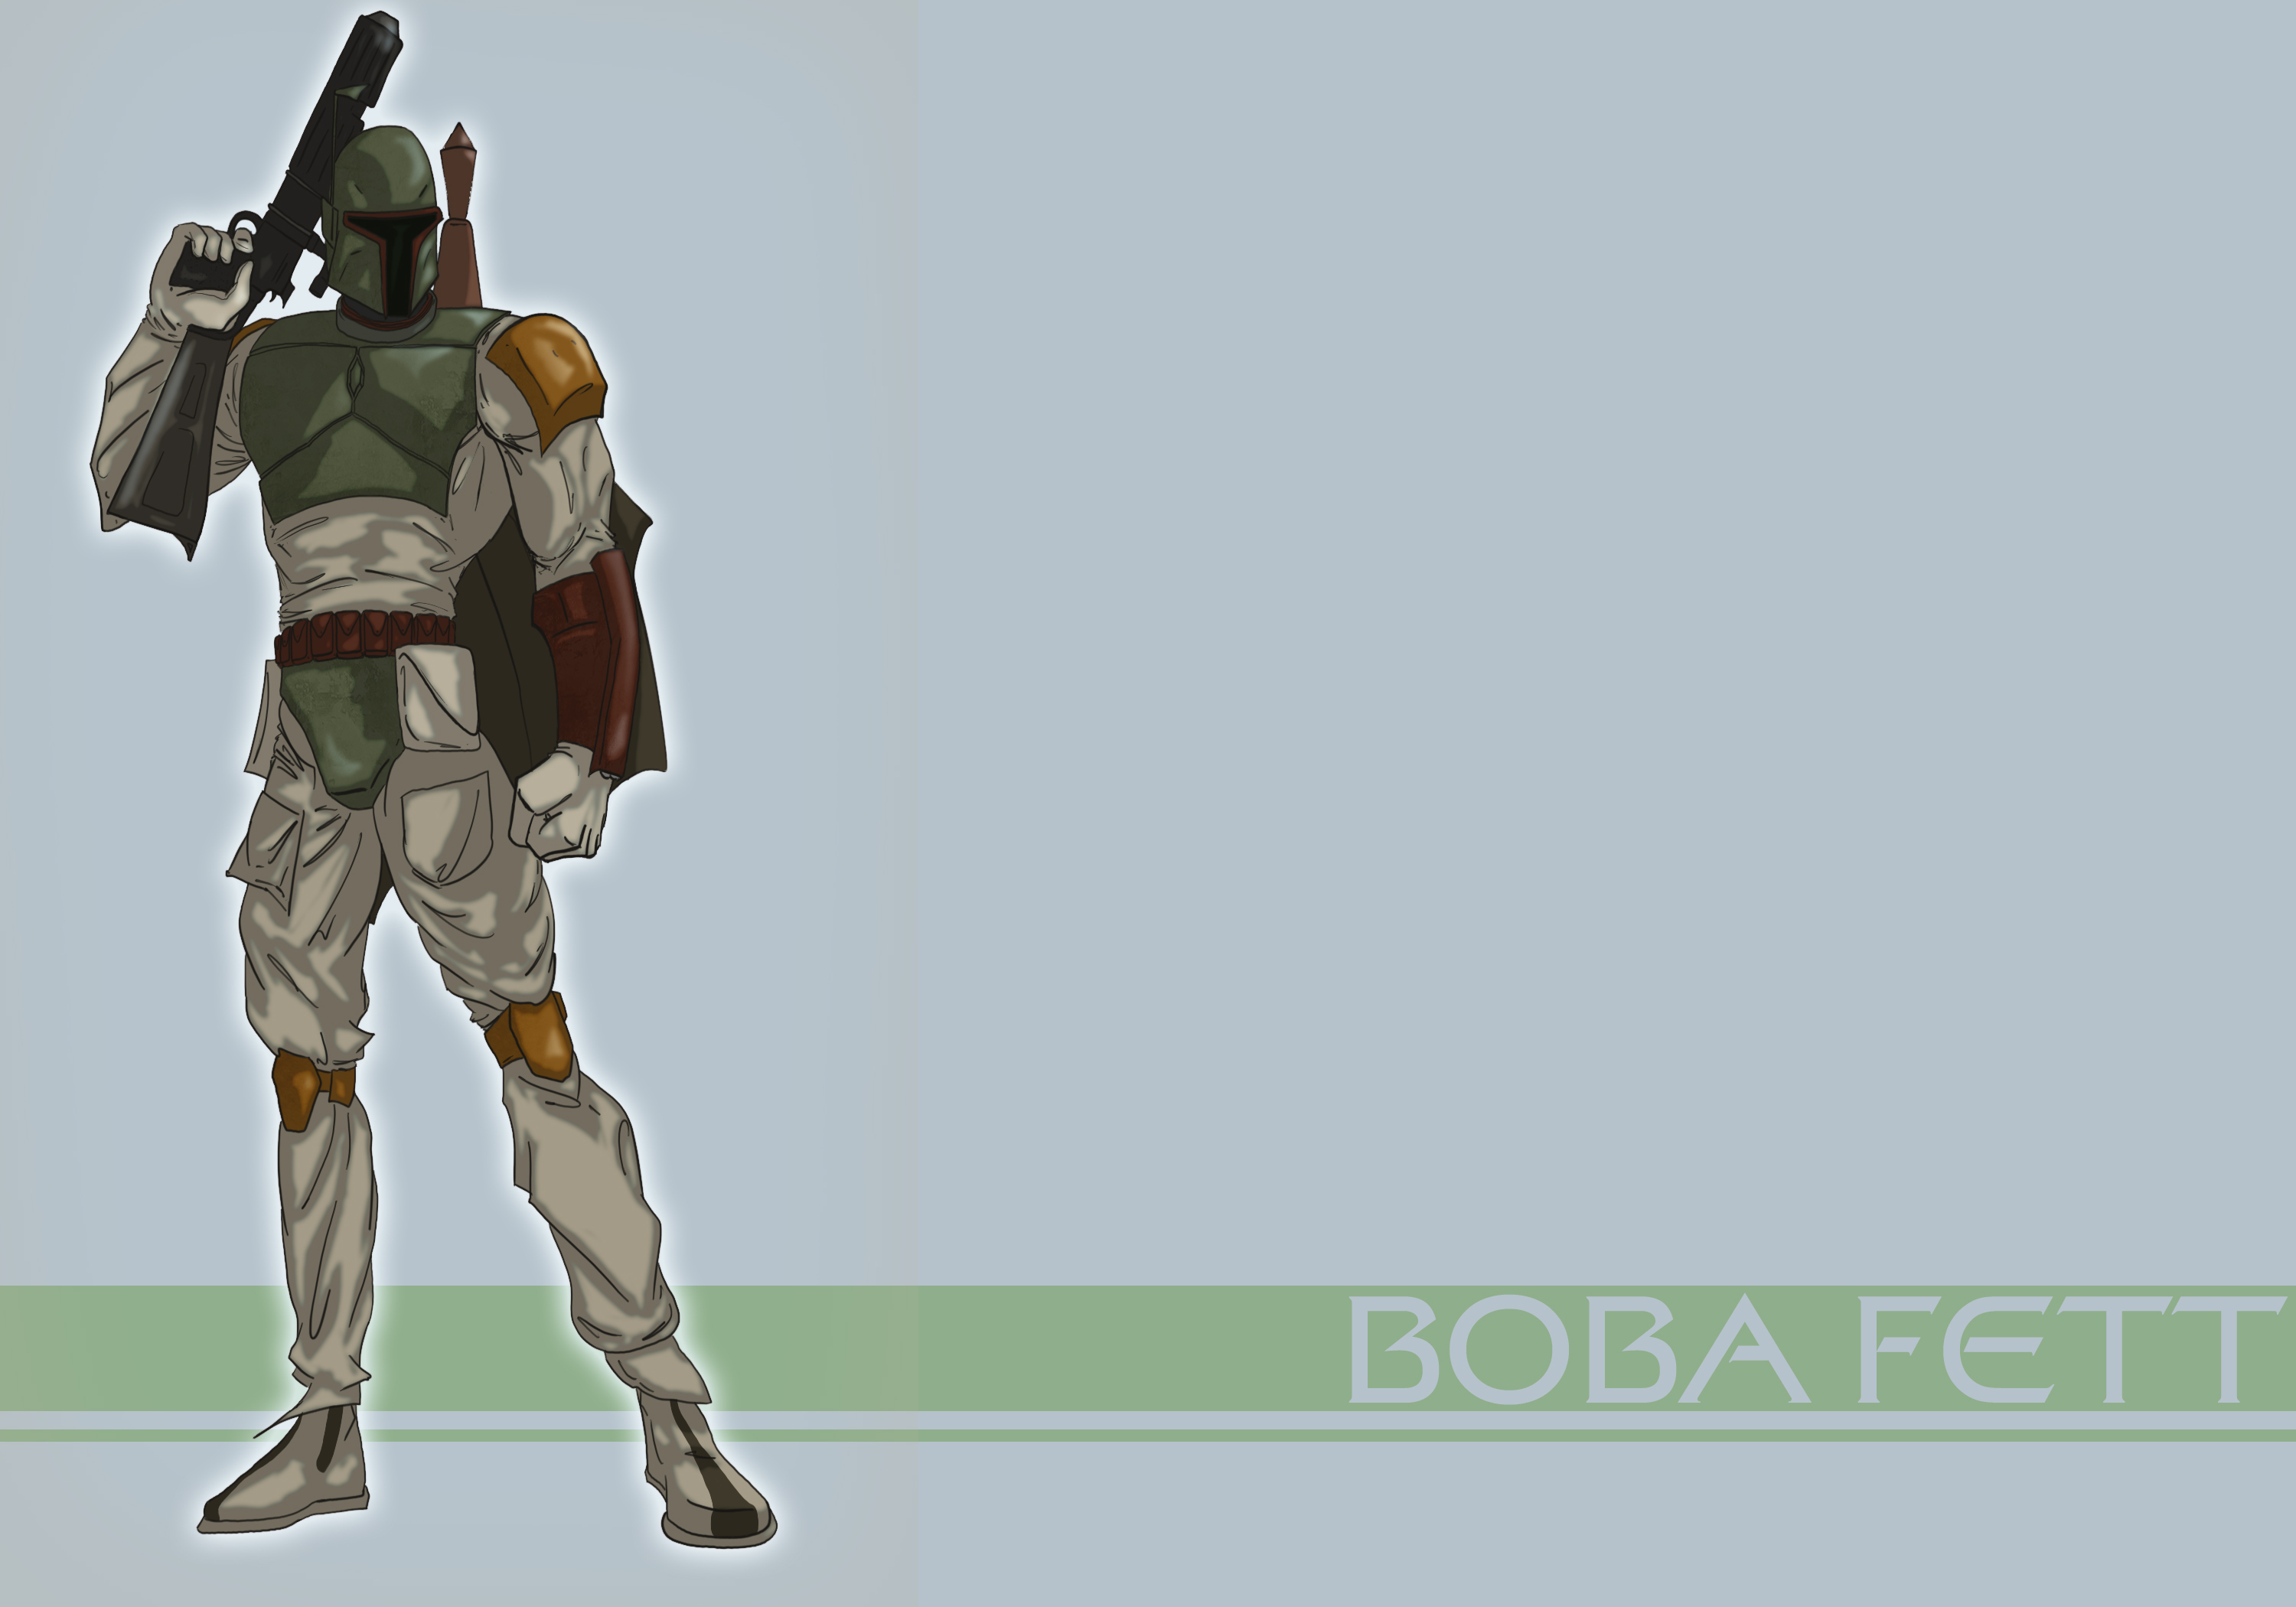 The best Boba Fett wallpaper ever Character wallpapers 3000x2100